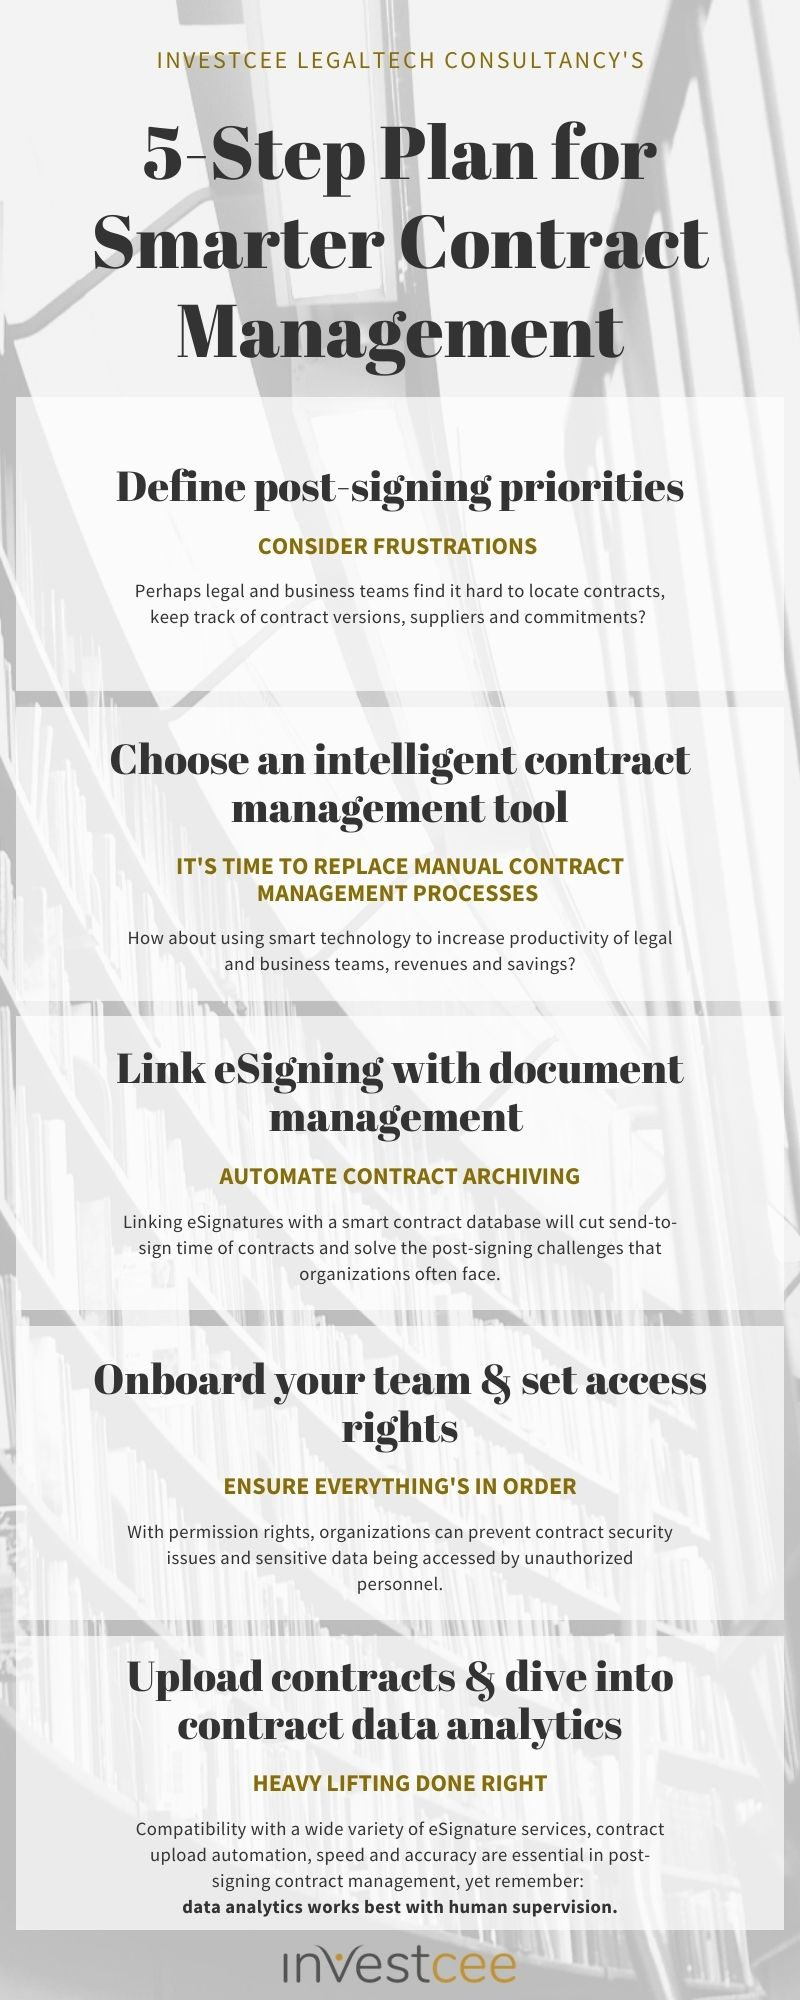 5-Step Plan for Smarter Contract Management